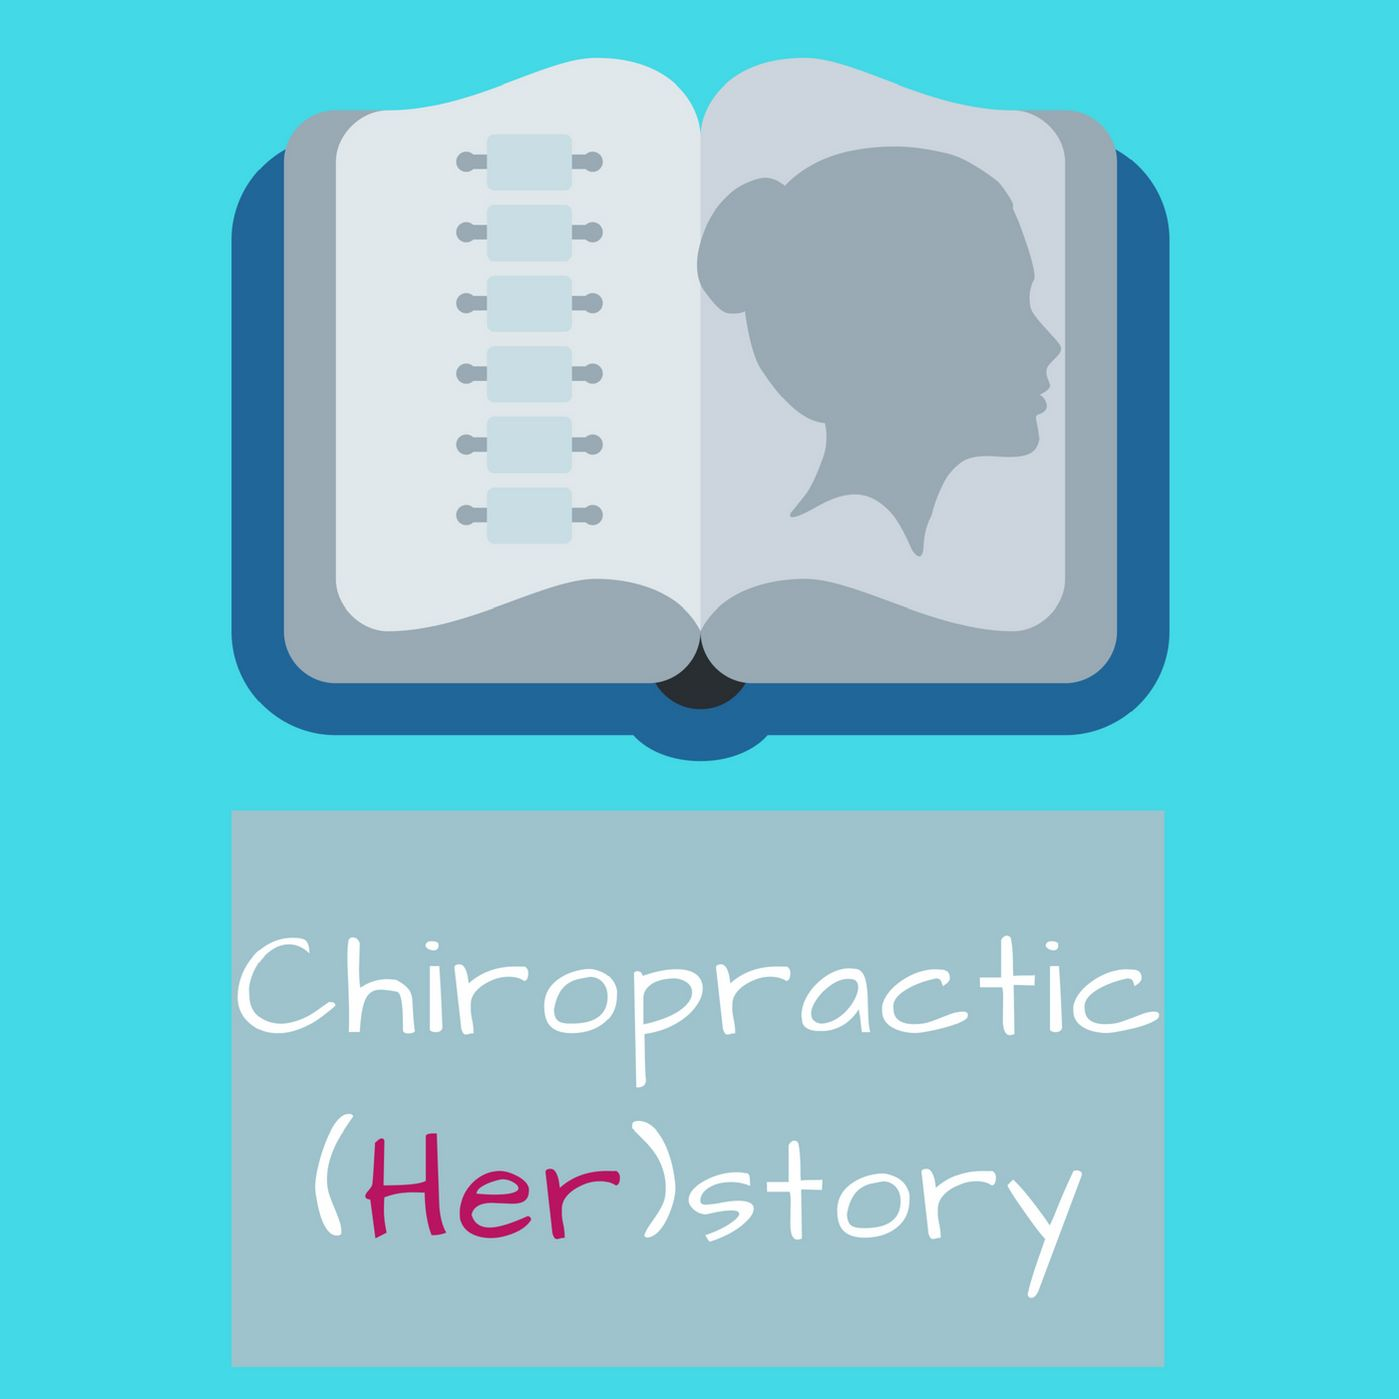 Shawn Powers- Chiropractic (Her)story Episode 38